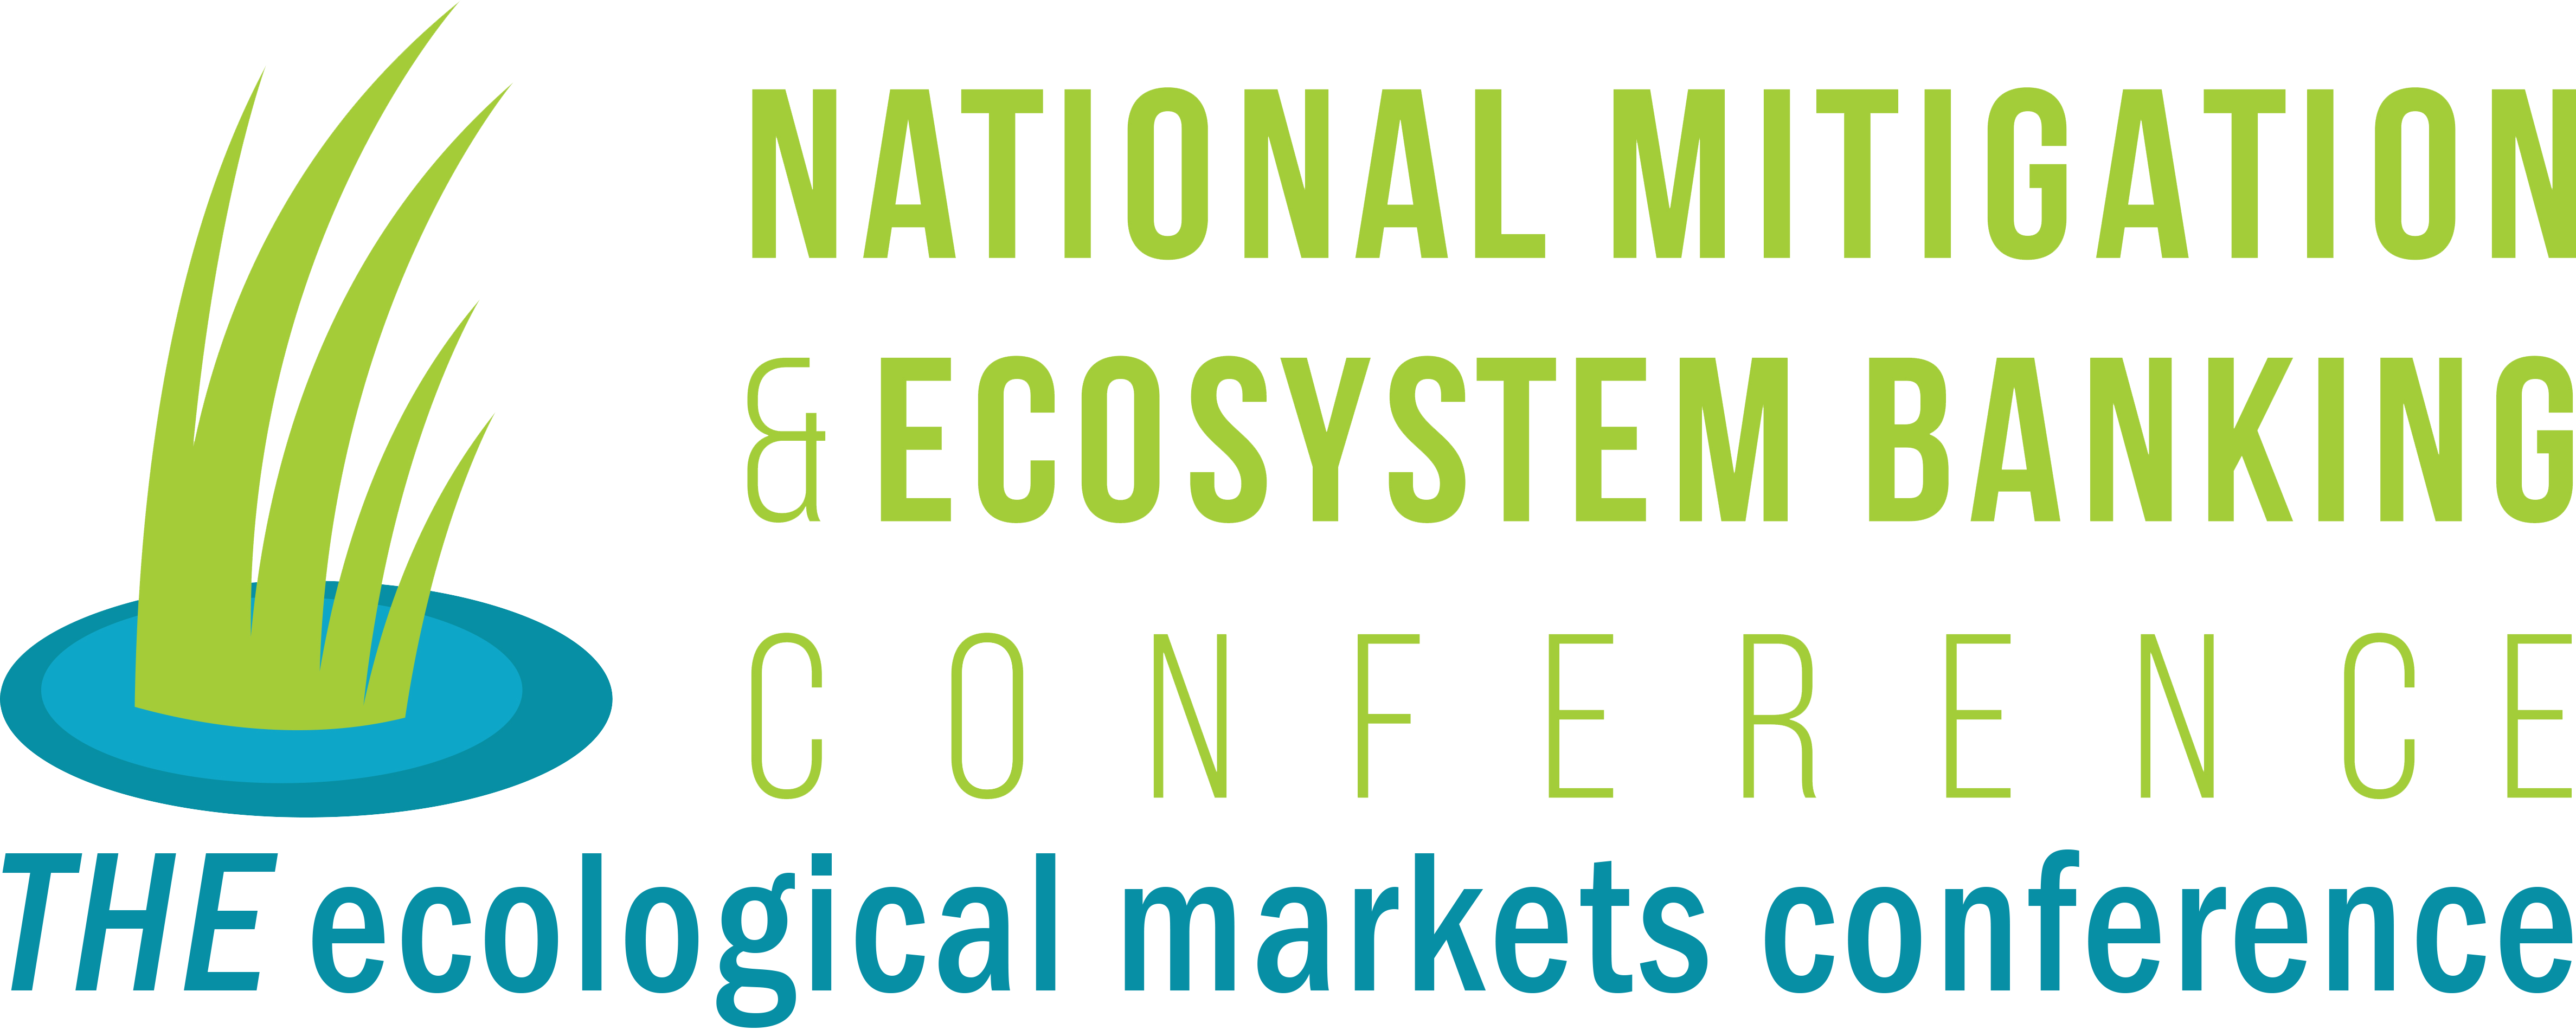 Mitigation Banking Conference